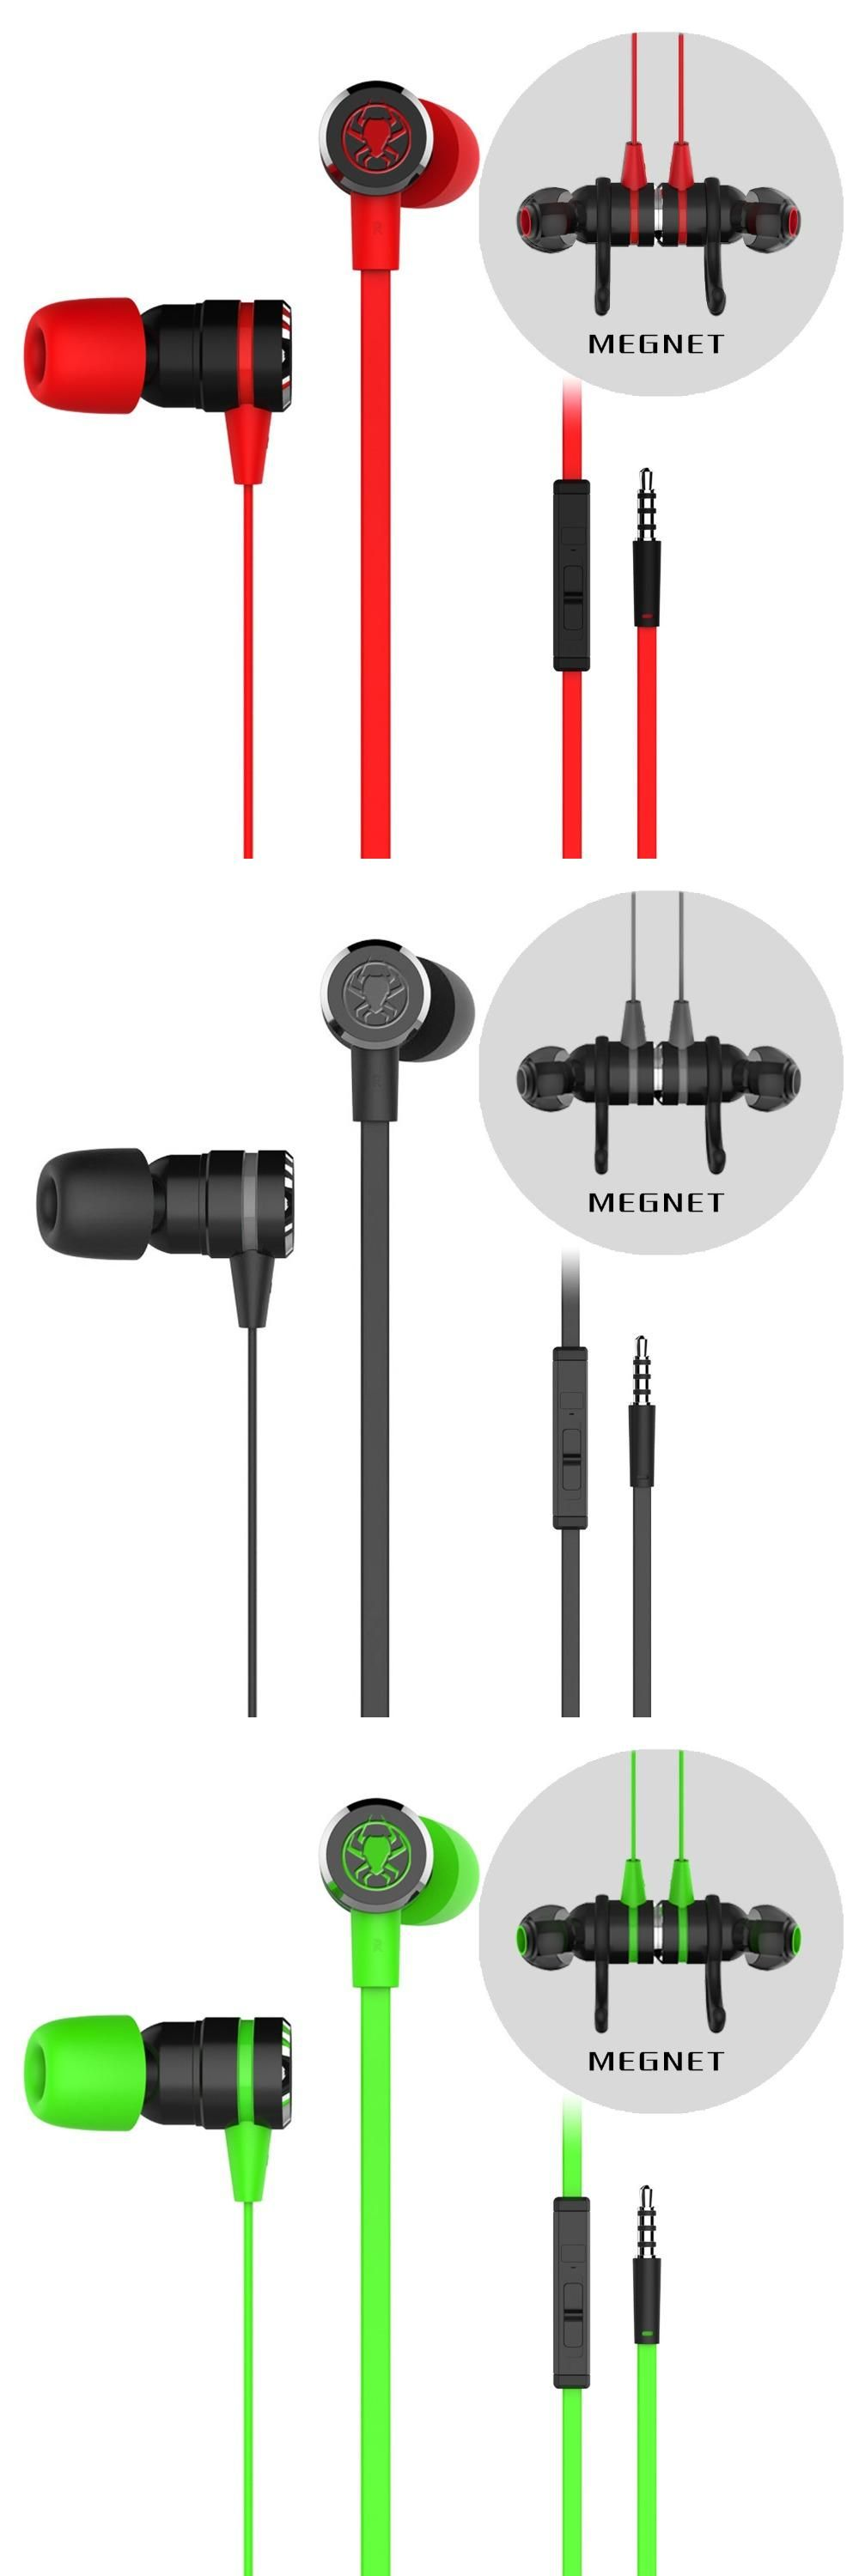 PLEXTONE G20 In Ear Professional Gaming Headset 3 5mm Noise Cancelling Stereo Bass Sport Eearphone with Memory Foam with mic